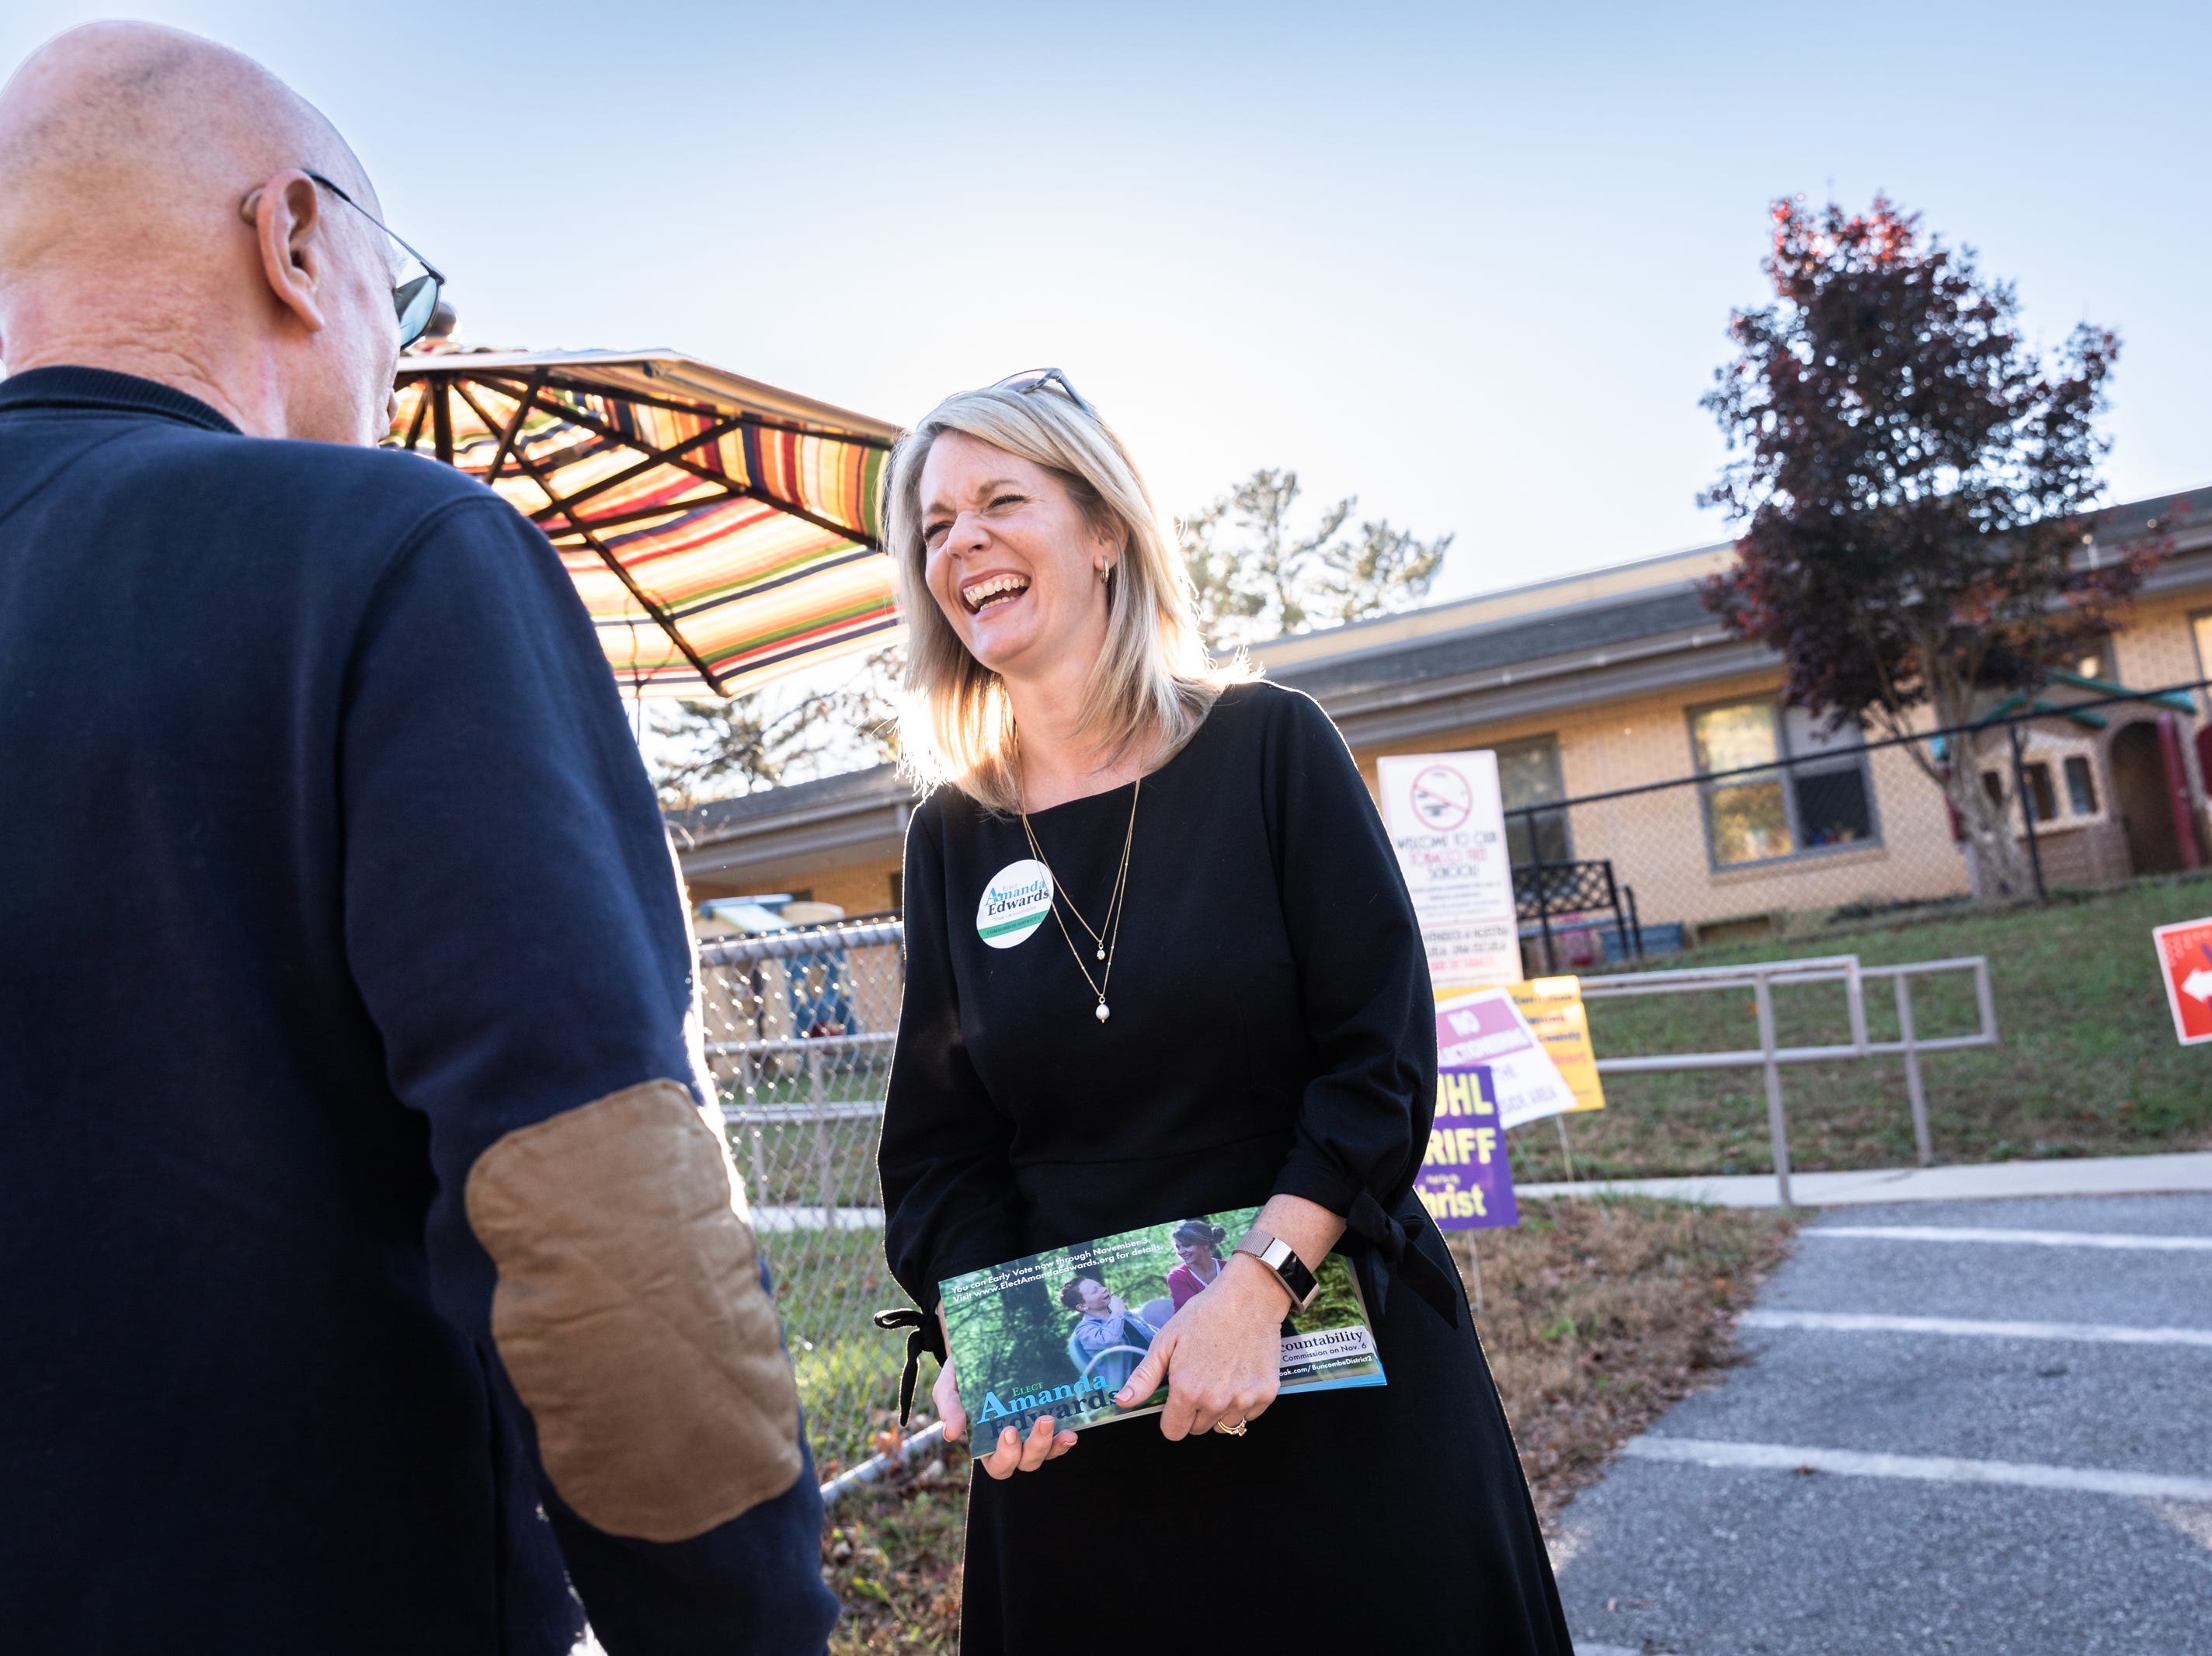 Amanda Edwards, Democratic candidate for the district 2 Buncombe County Commission, talks with a Democratic Party volunteer at Ira B. Jones elementary school, one of the midterm election voting sites, Nov. 6, 2018.